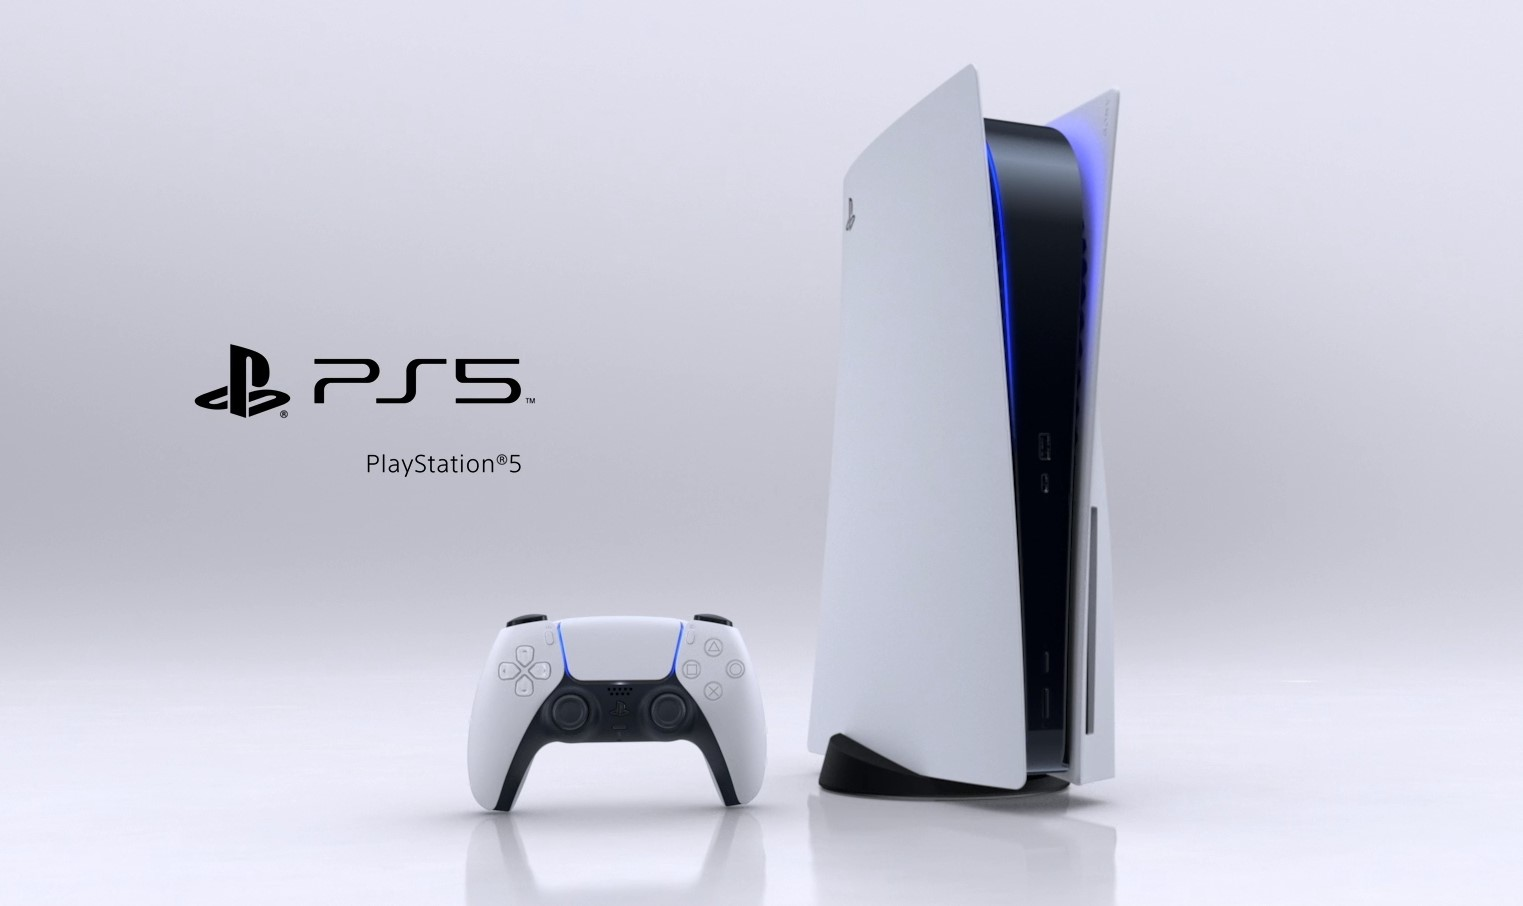 PS5 Image